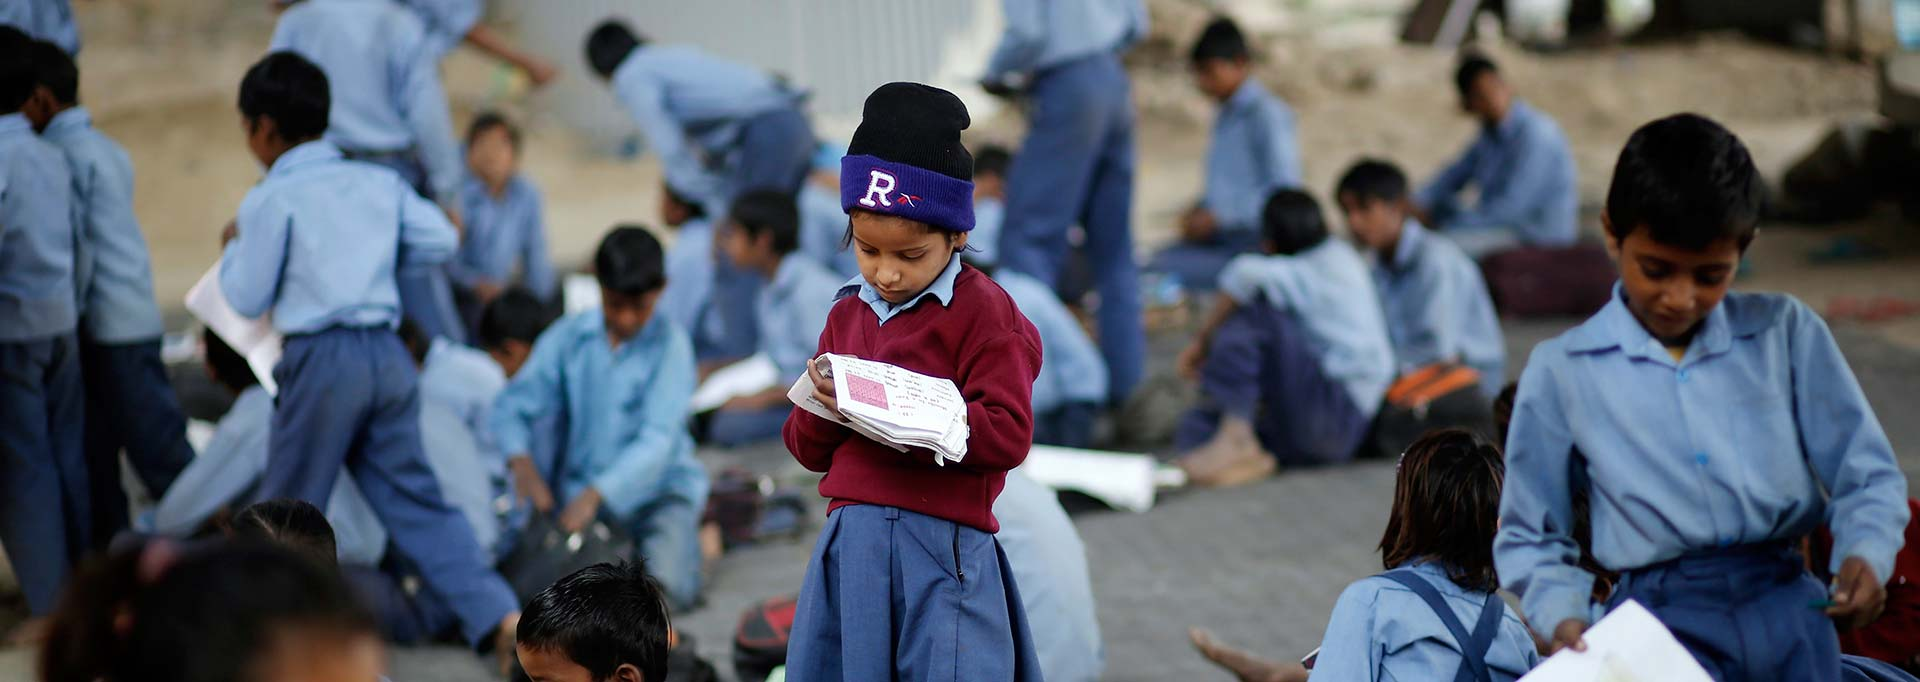 CSR Child Education